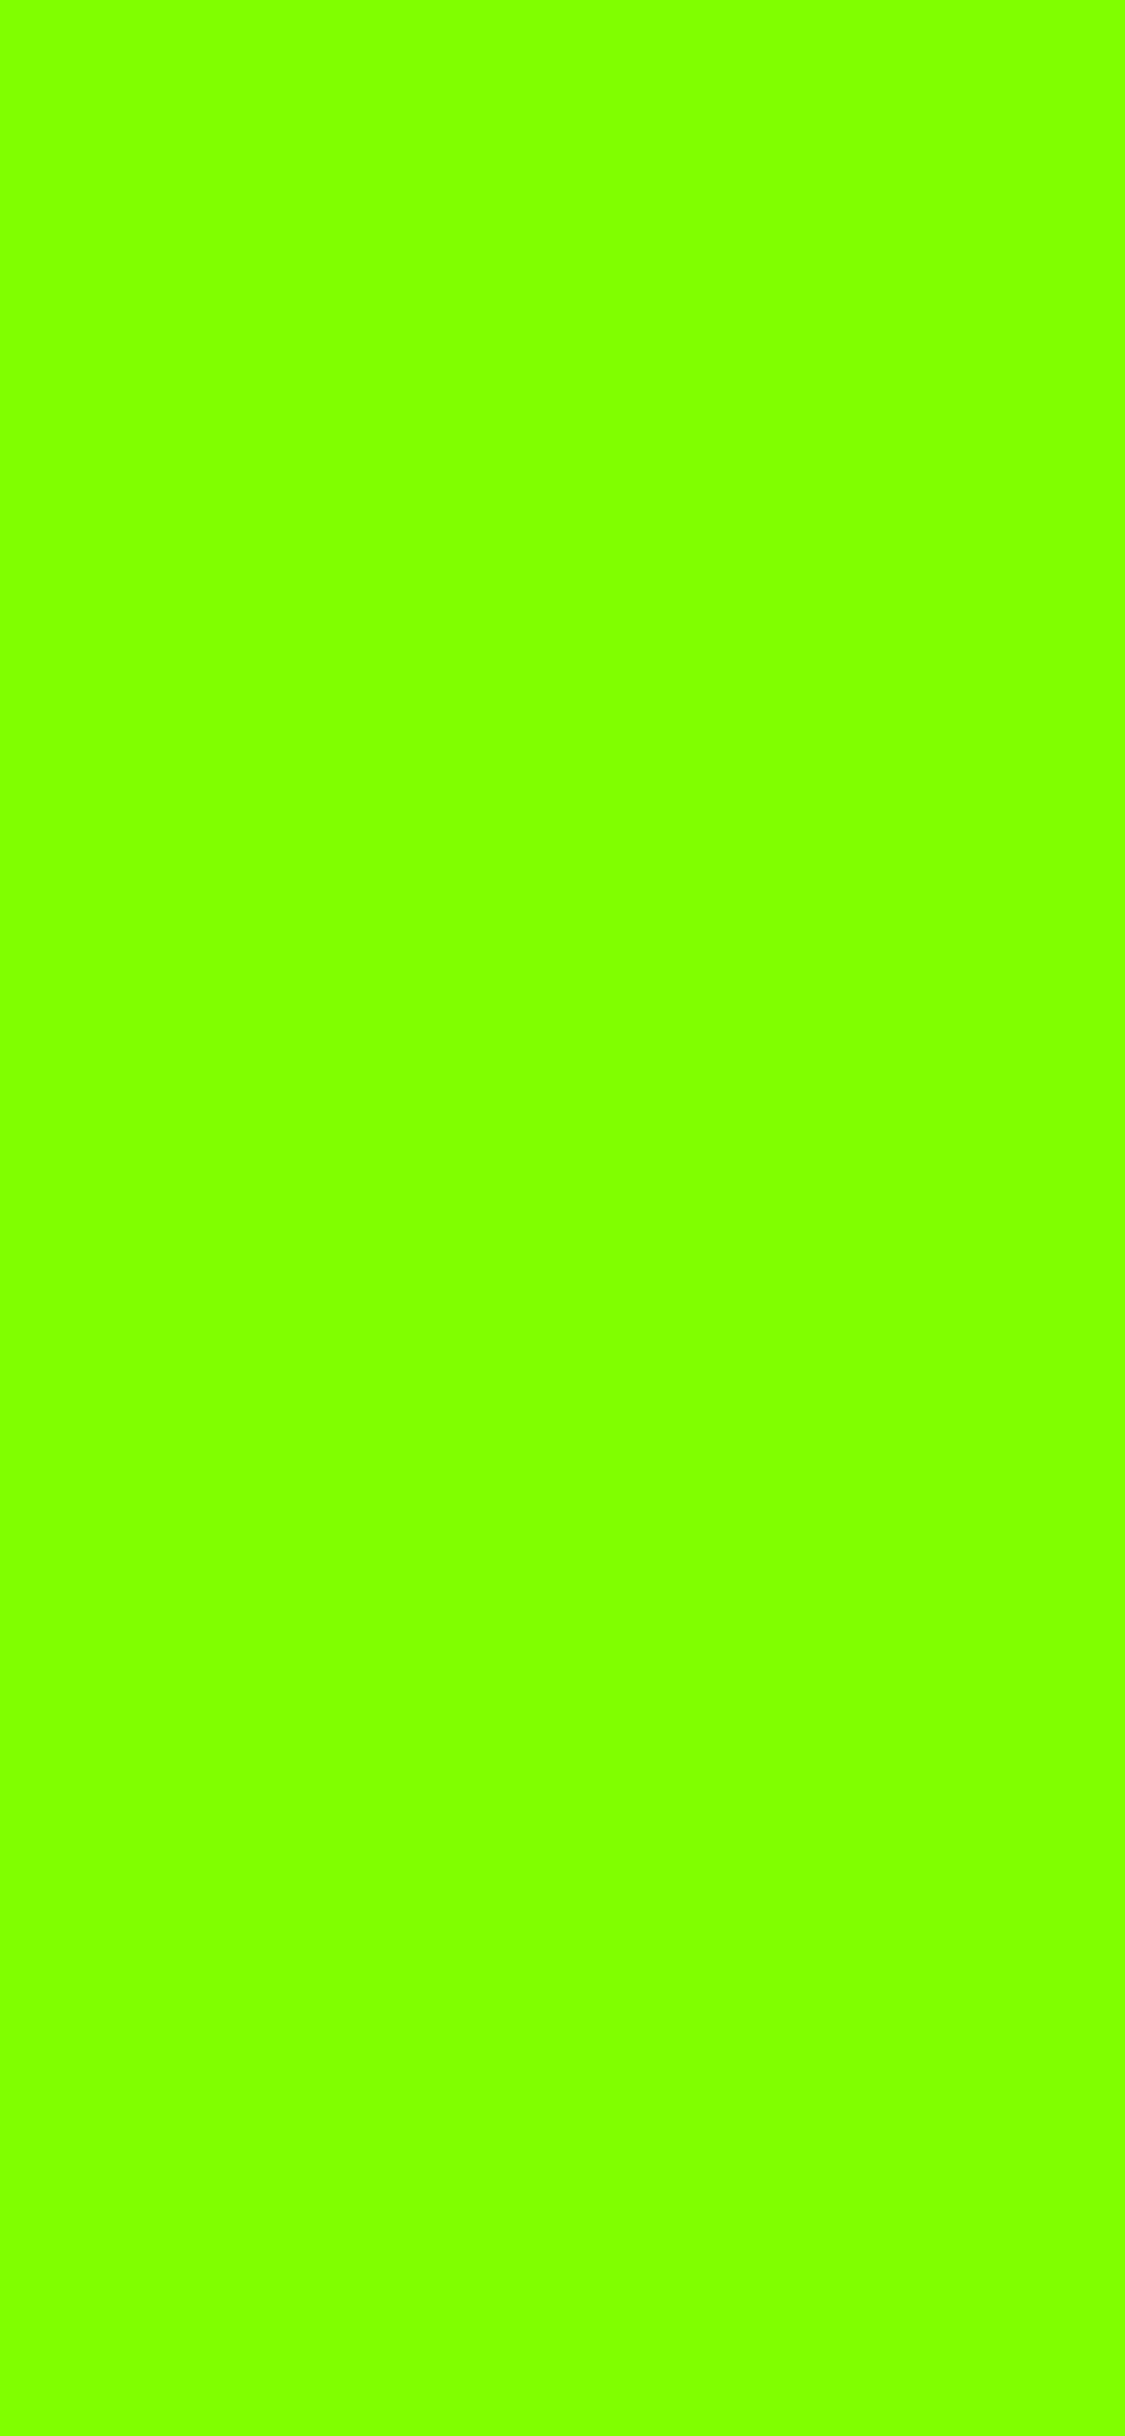 1125x2436 Chartreuse For Web Solid Color Background